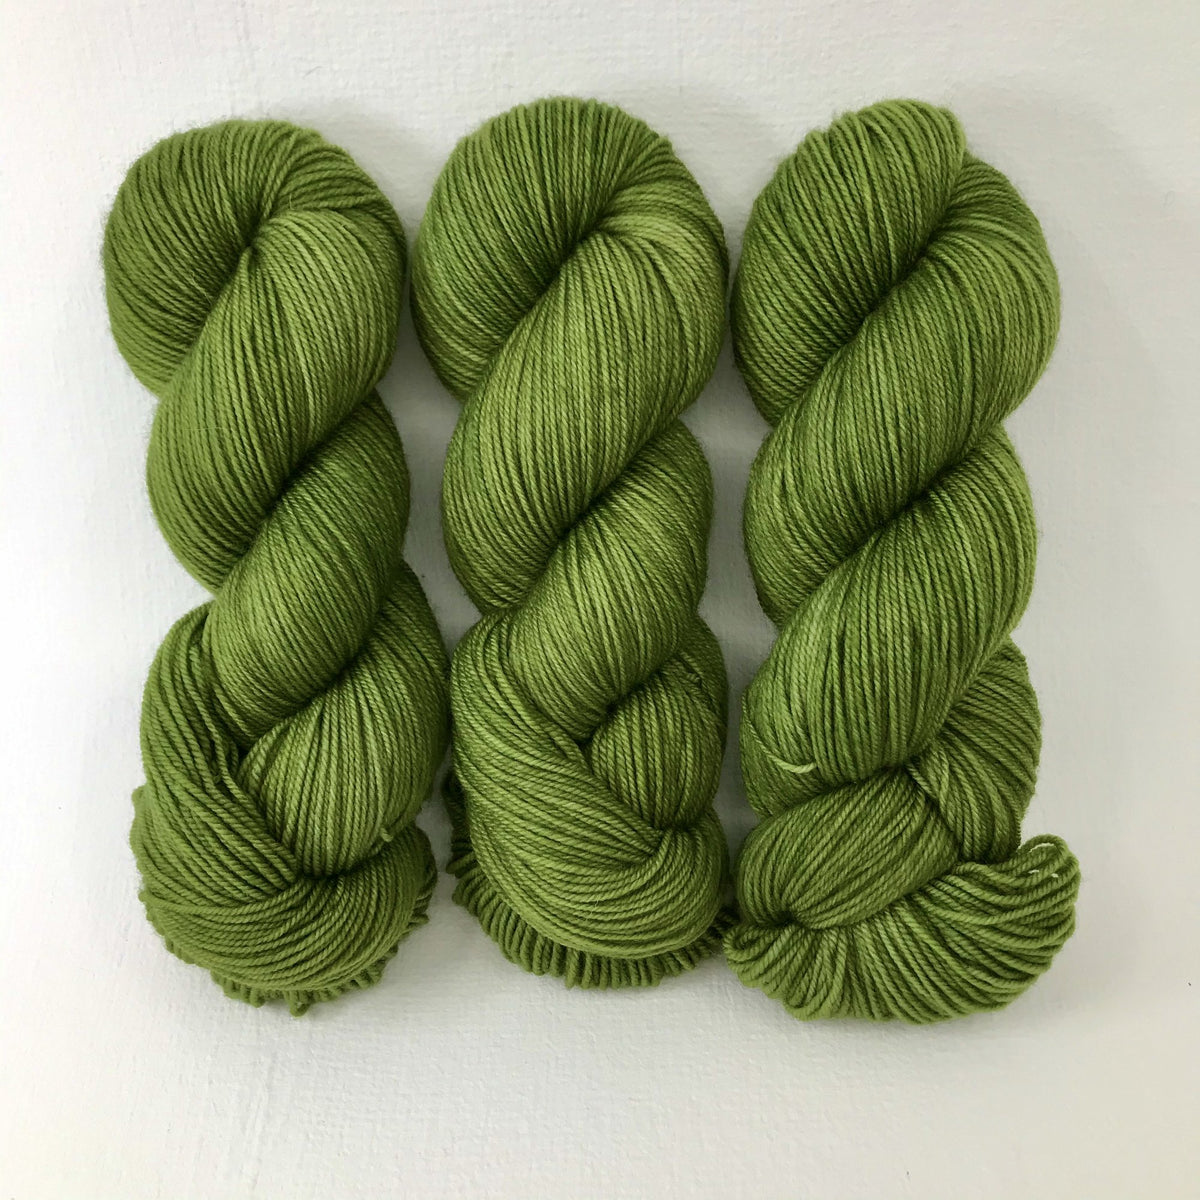 Mossy Bank - Merino Singles - Dyed Stock